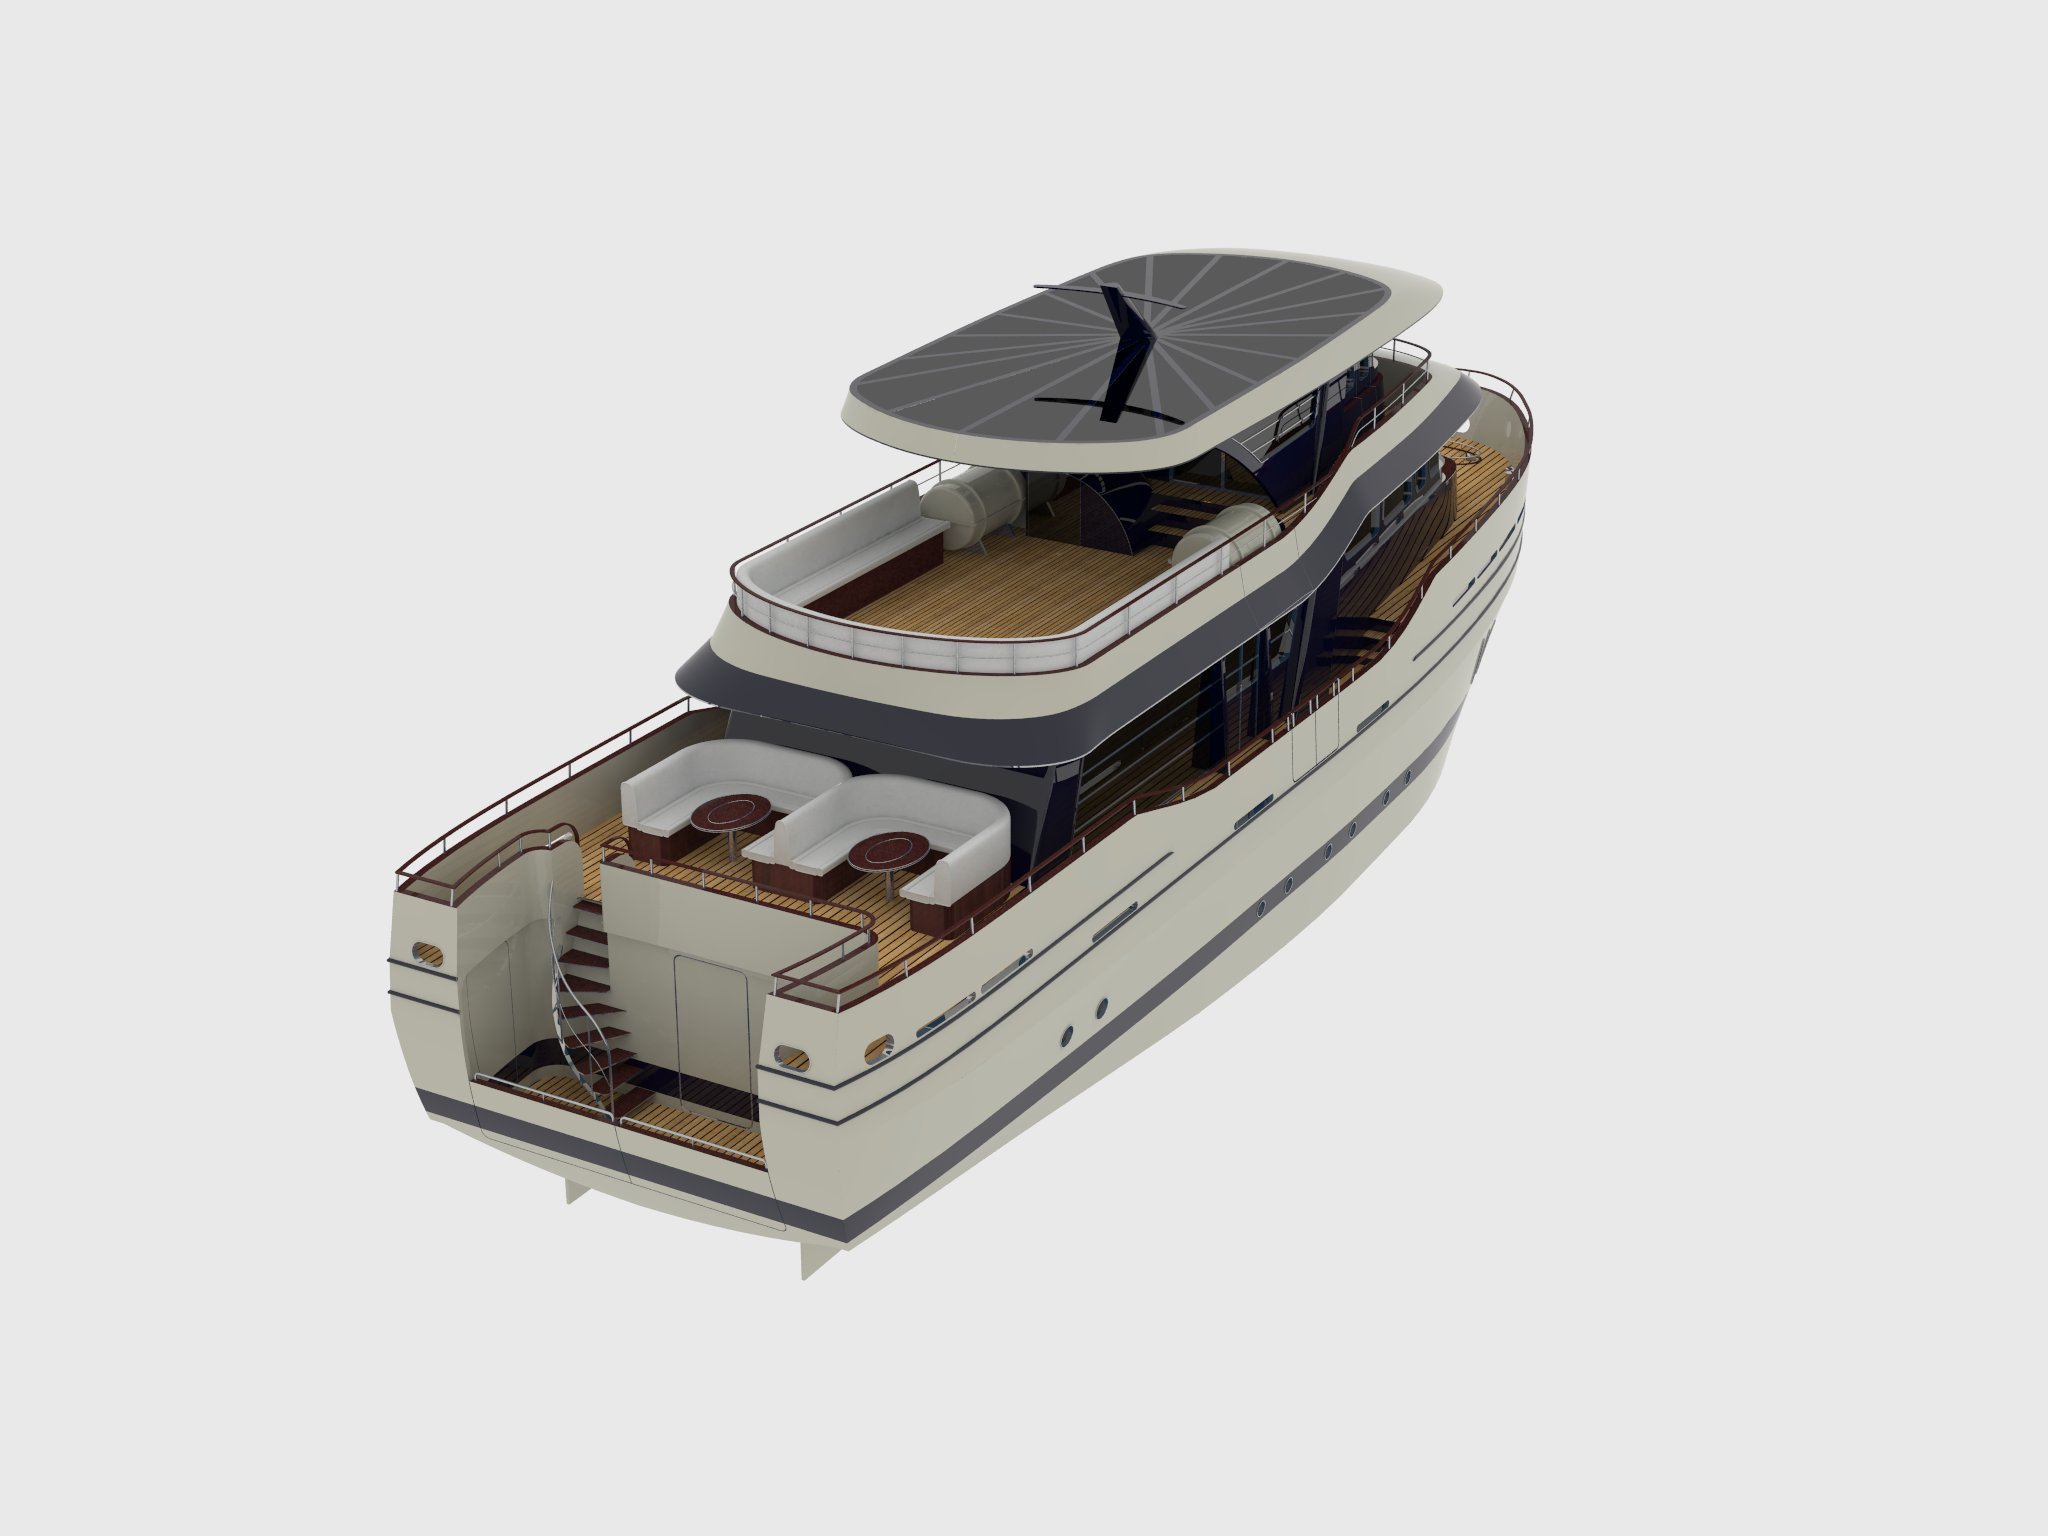 24m fishing motor boat - perspective view 5